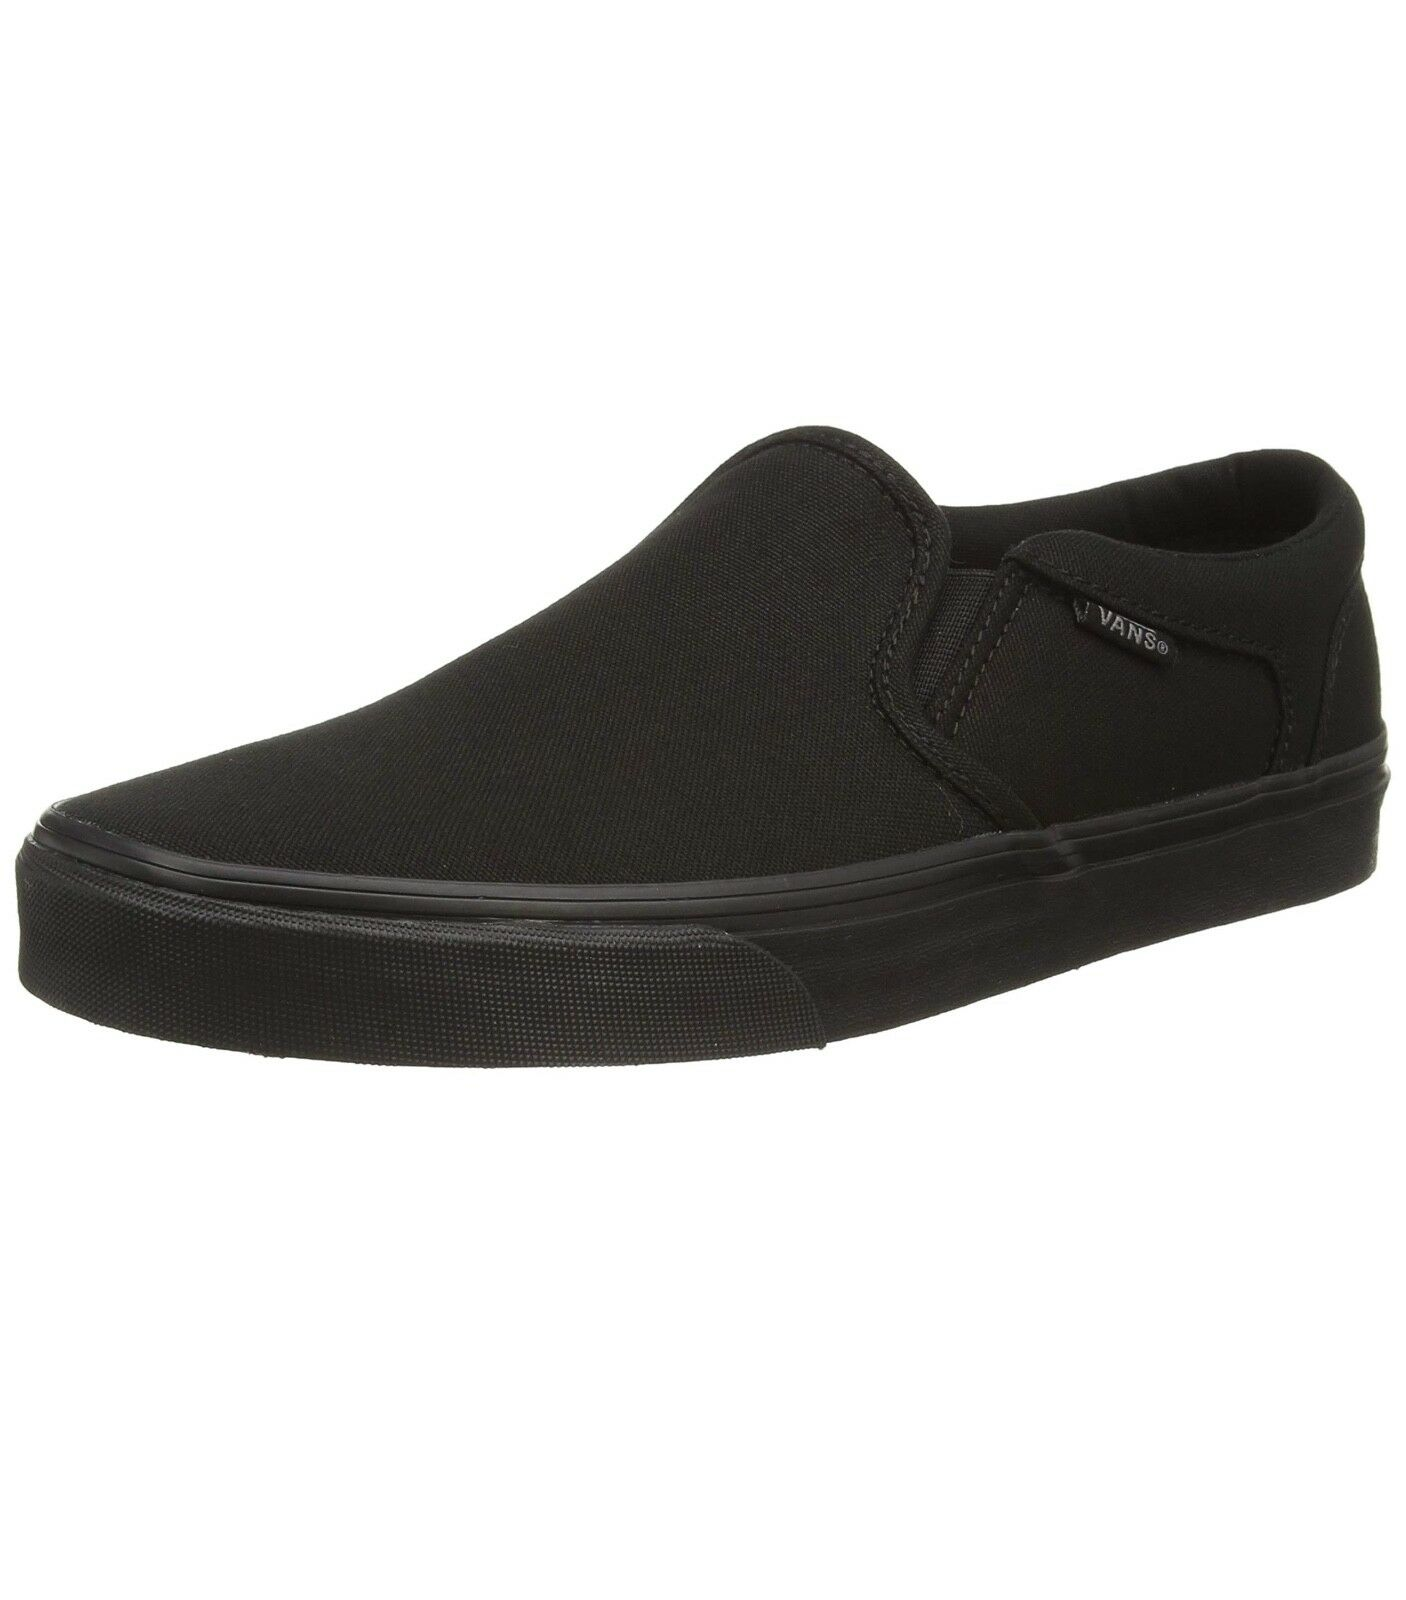 VBNS Bsher Mens Canvas Skater Trainers Plain Shoes Slip On Plimsolls Black